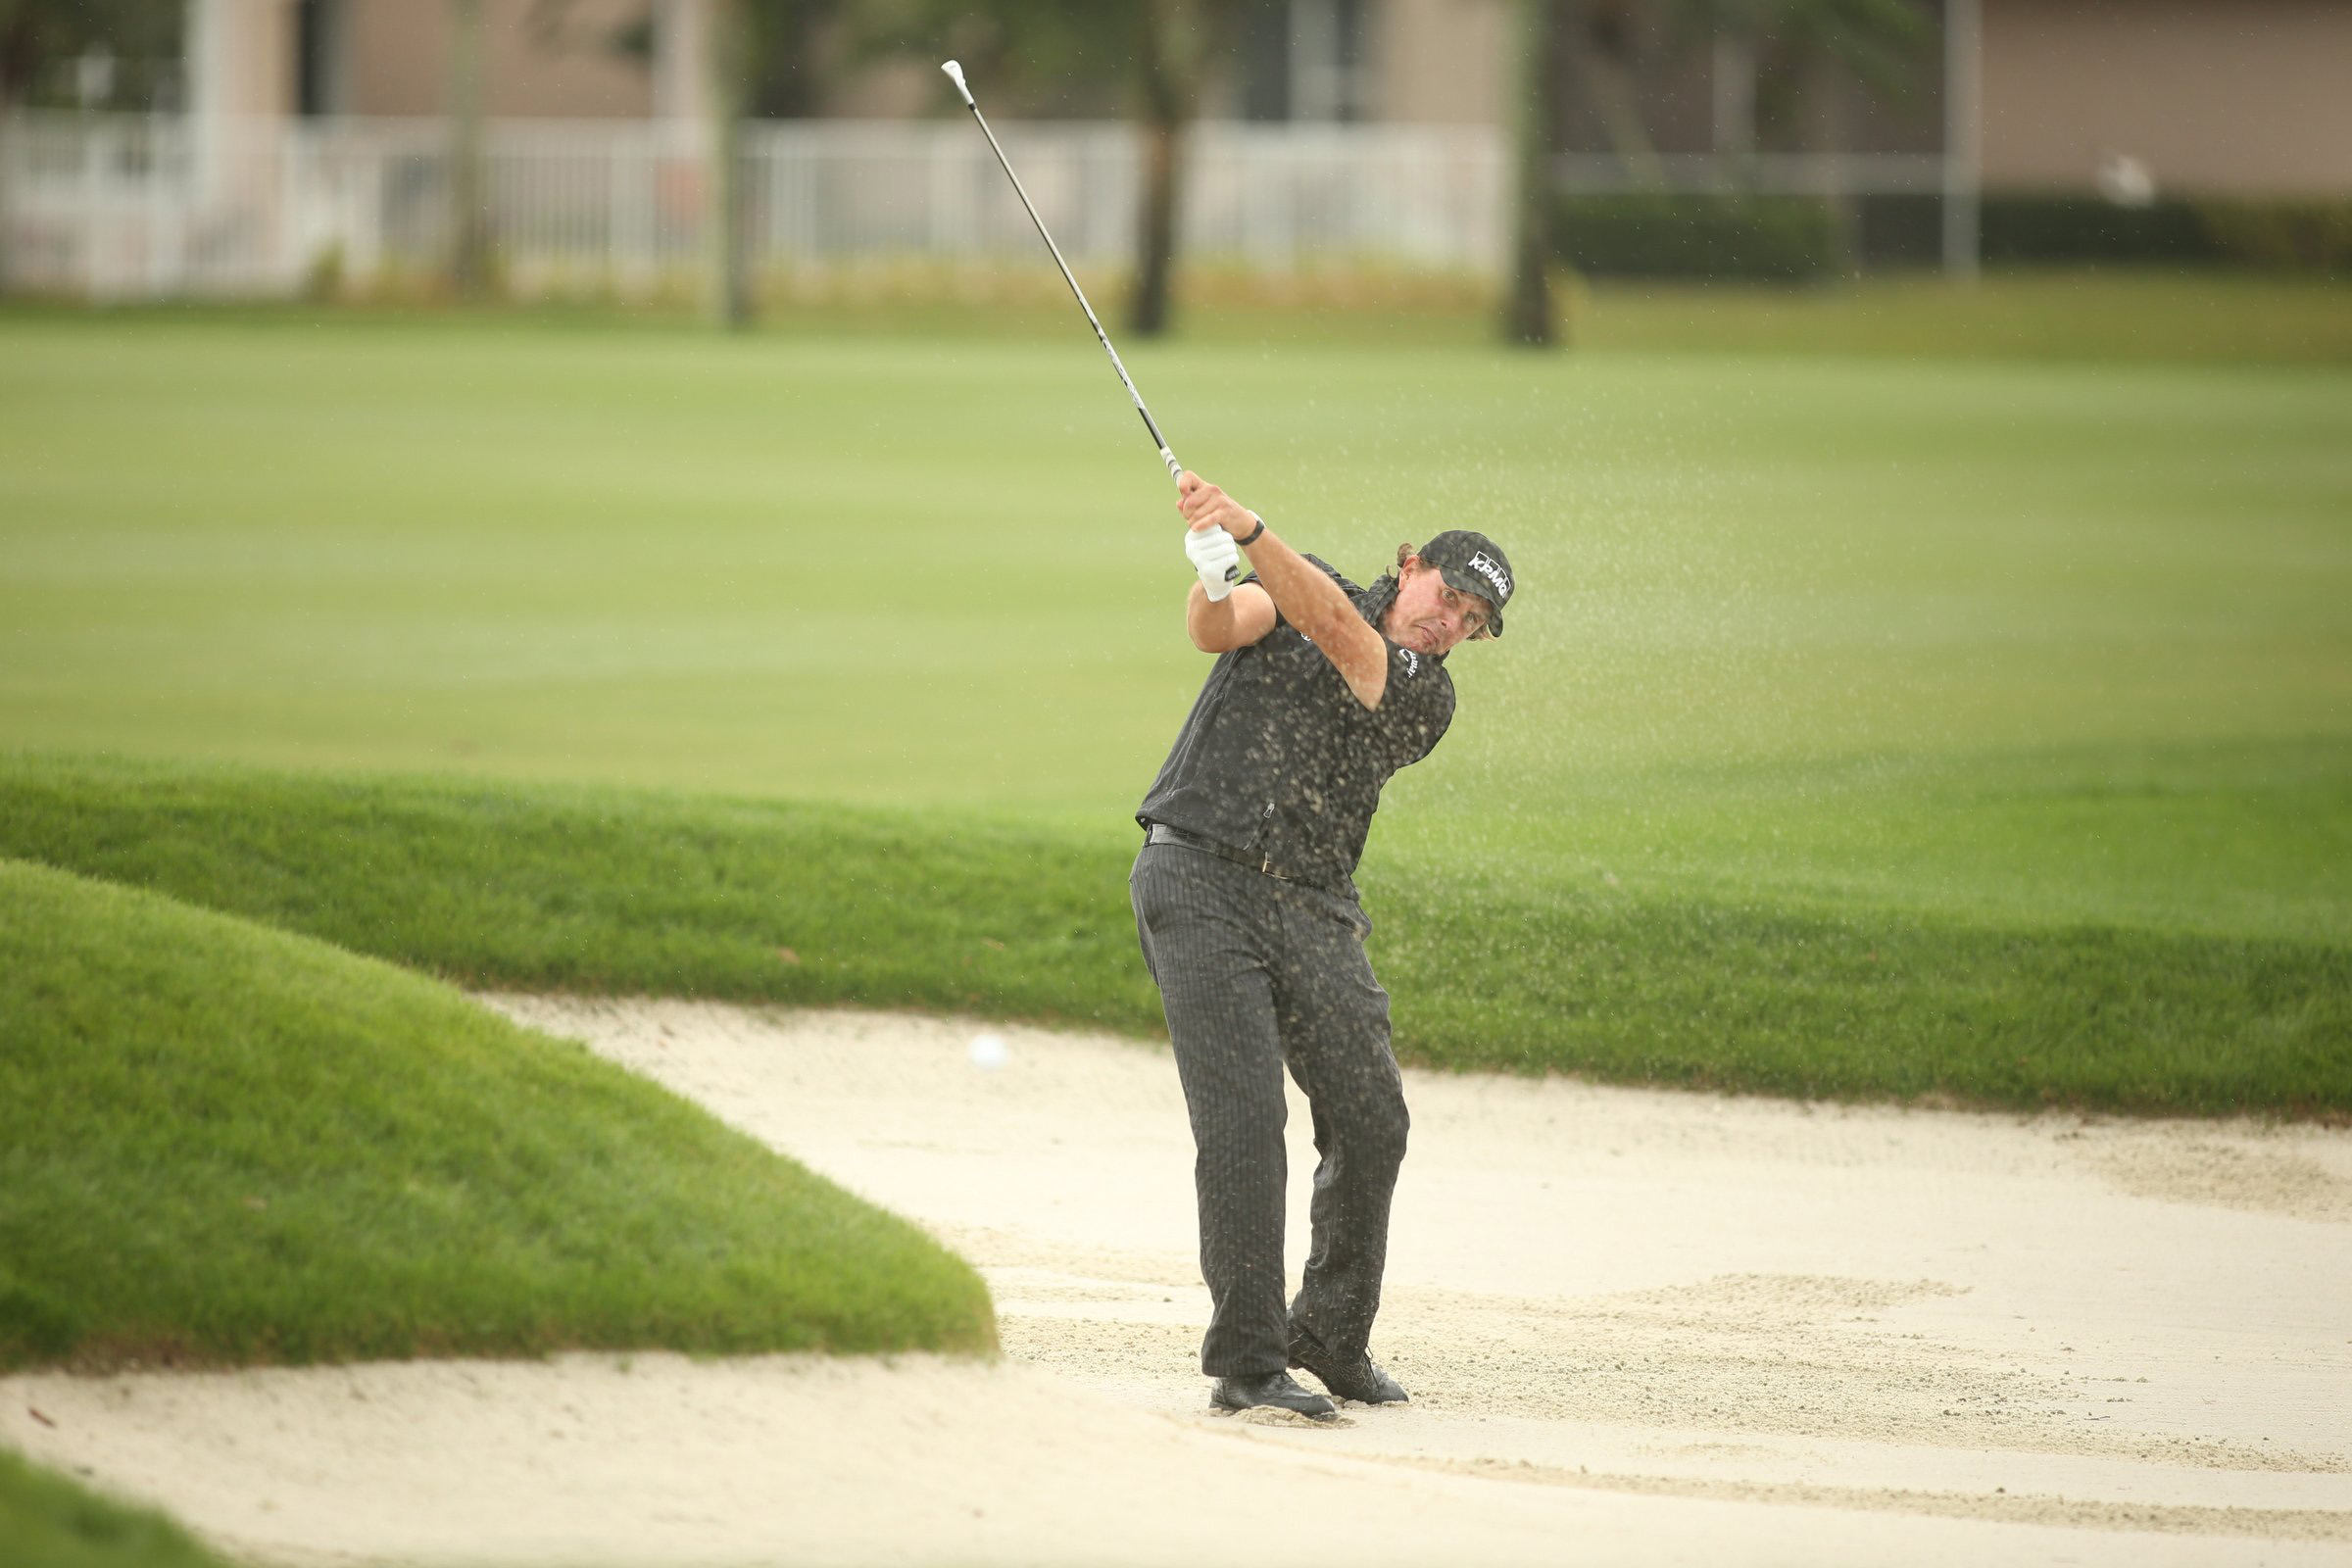 Phil Mickelson from a fairway bunker at PGA National.